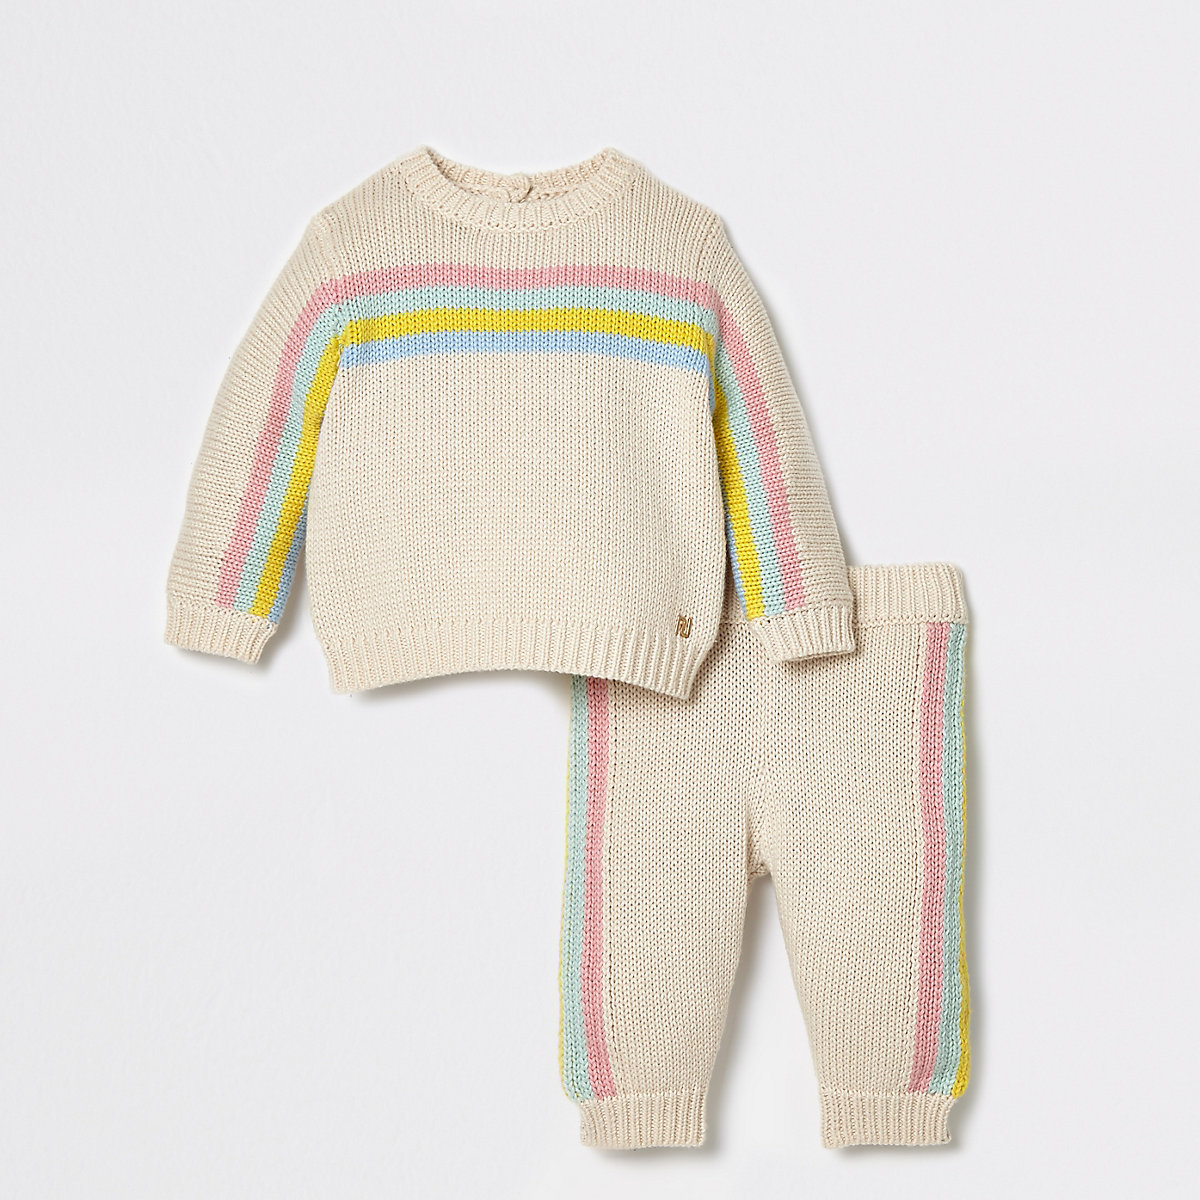 Baby cream rainbow stripe knit sweater outfit